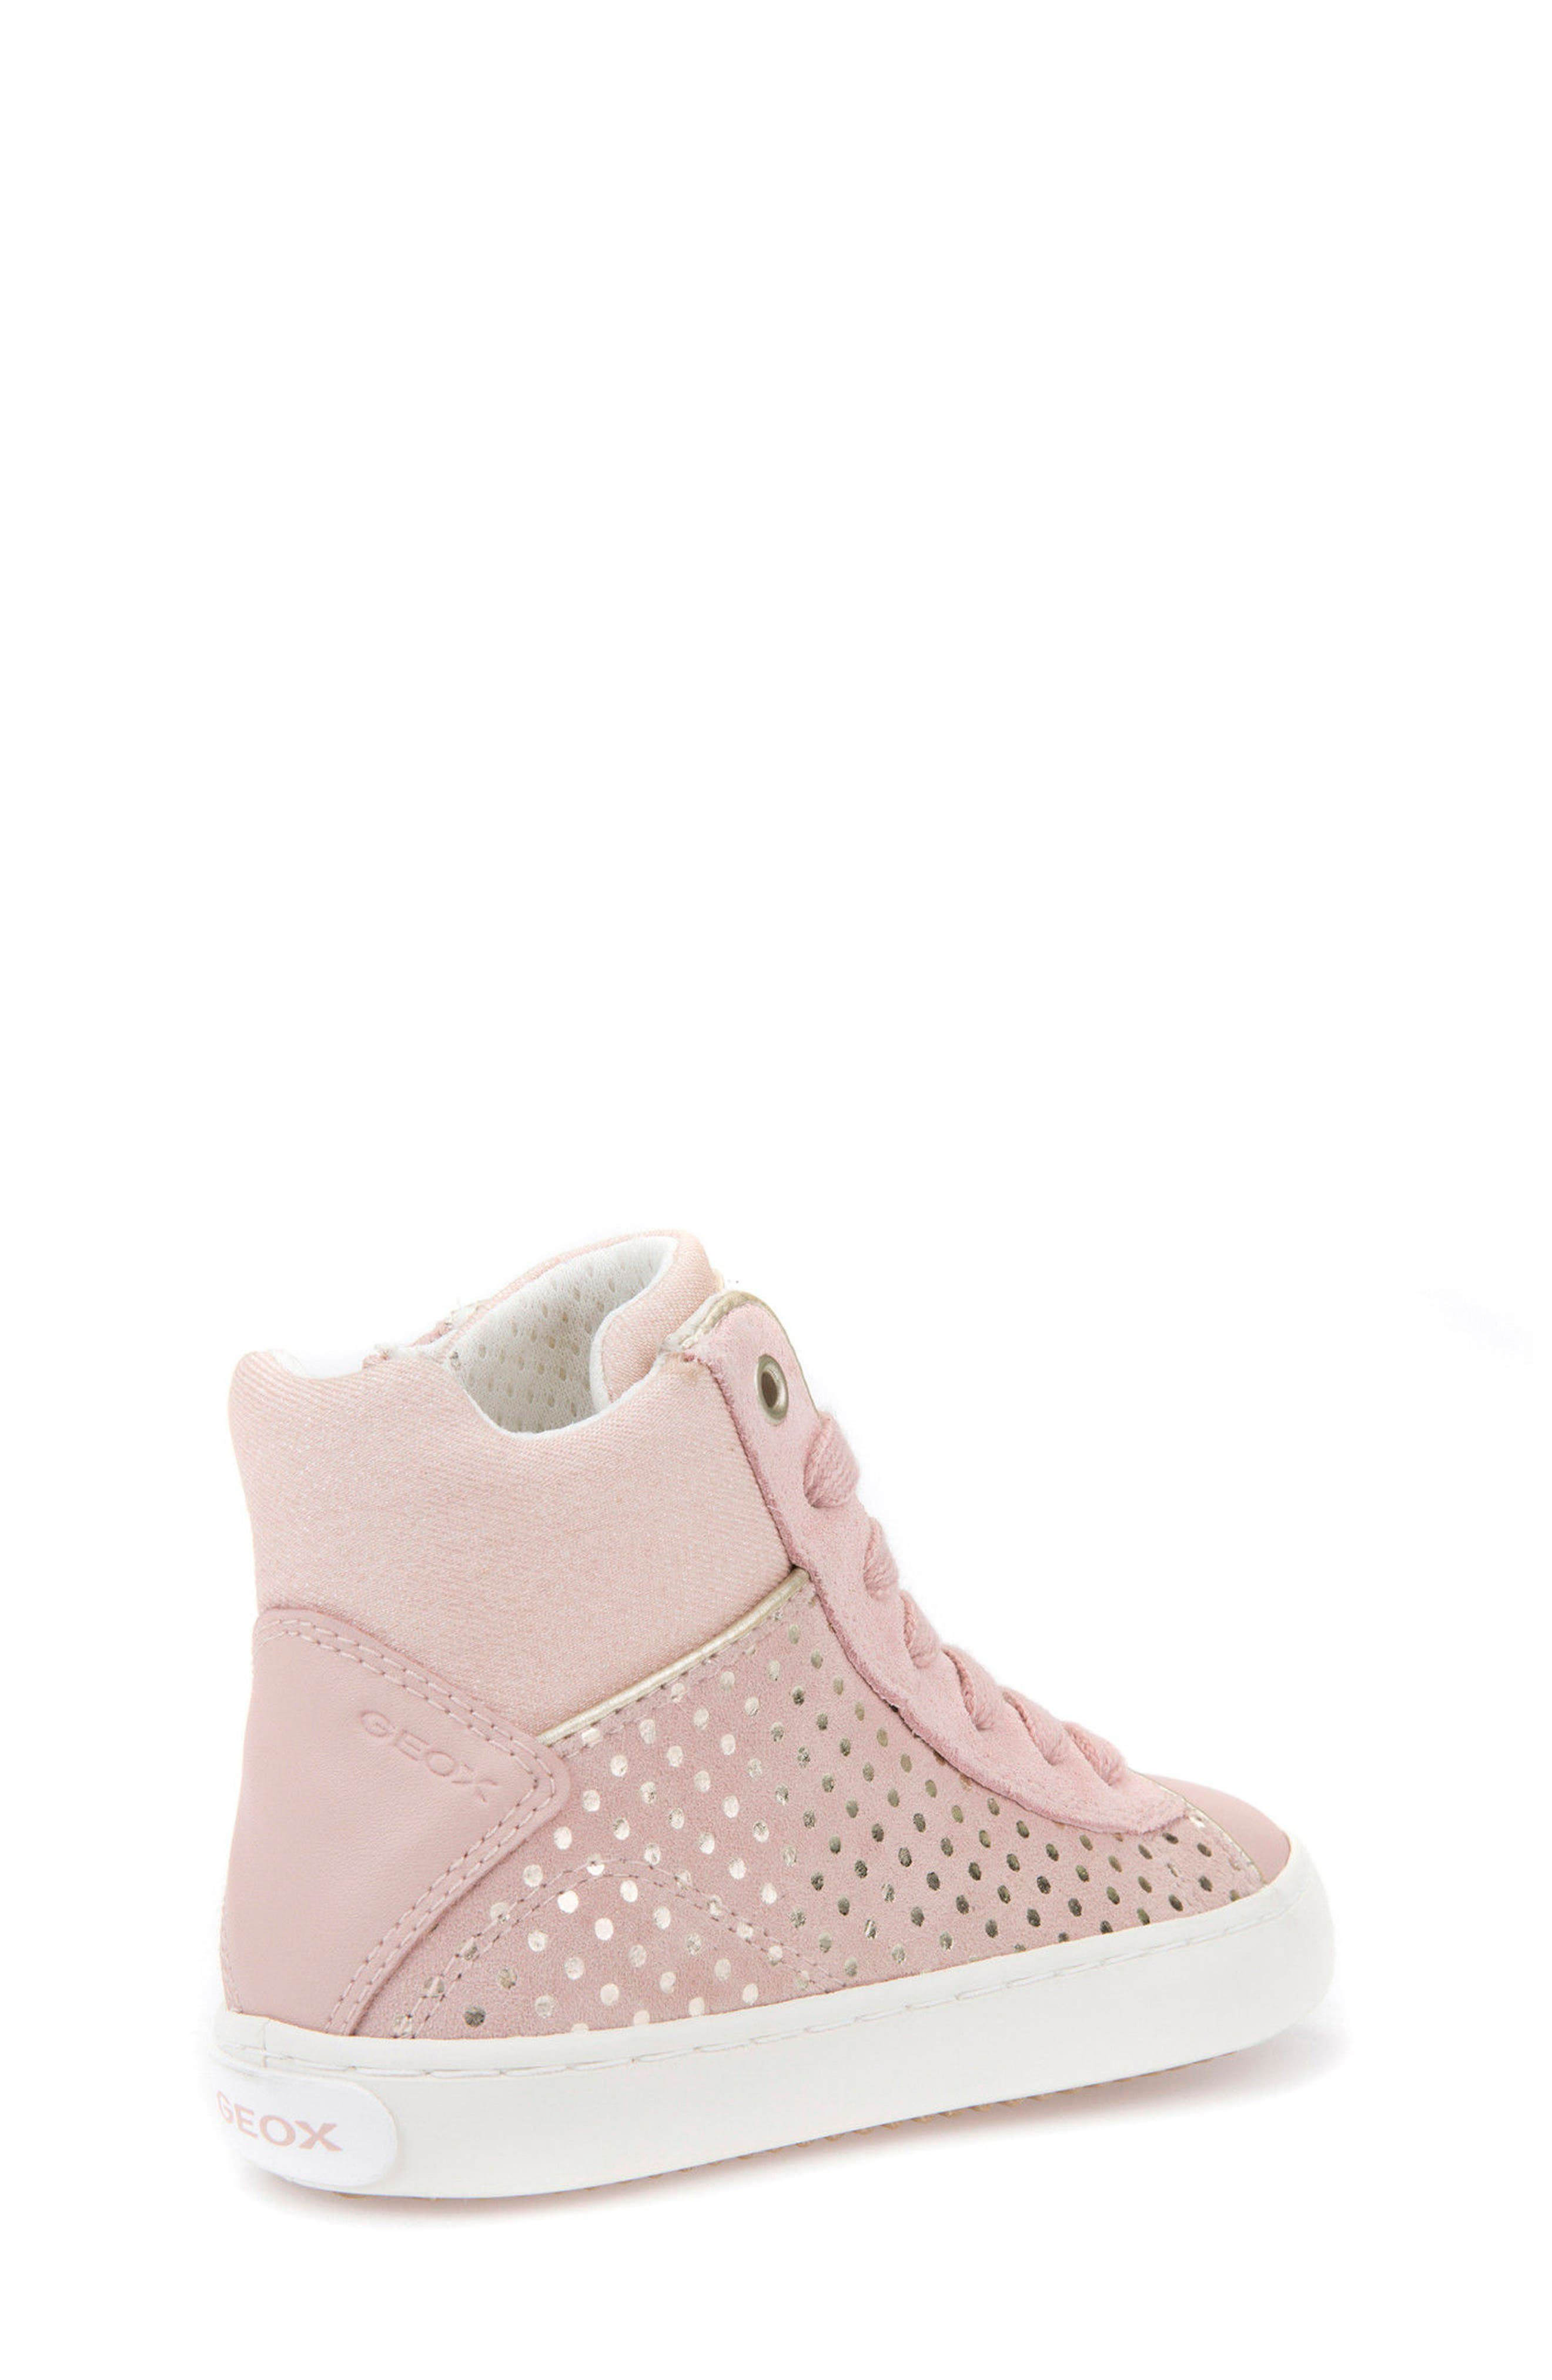 Kilwi High Top Zip Sneaker,                             Alternate thumbnail 2, color,                             ROSE